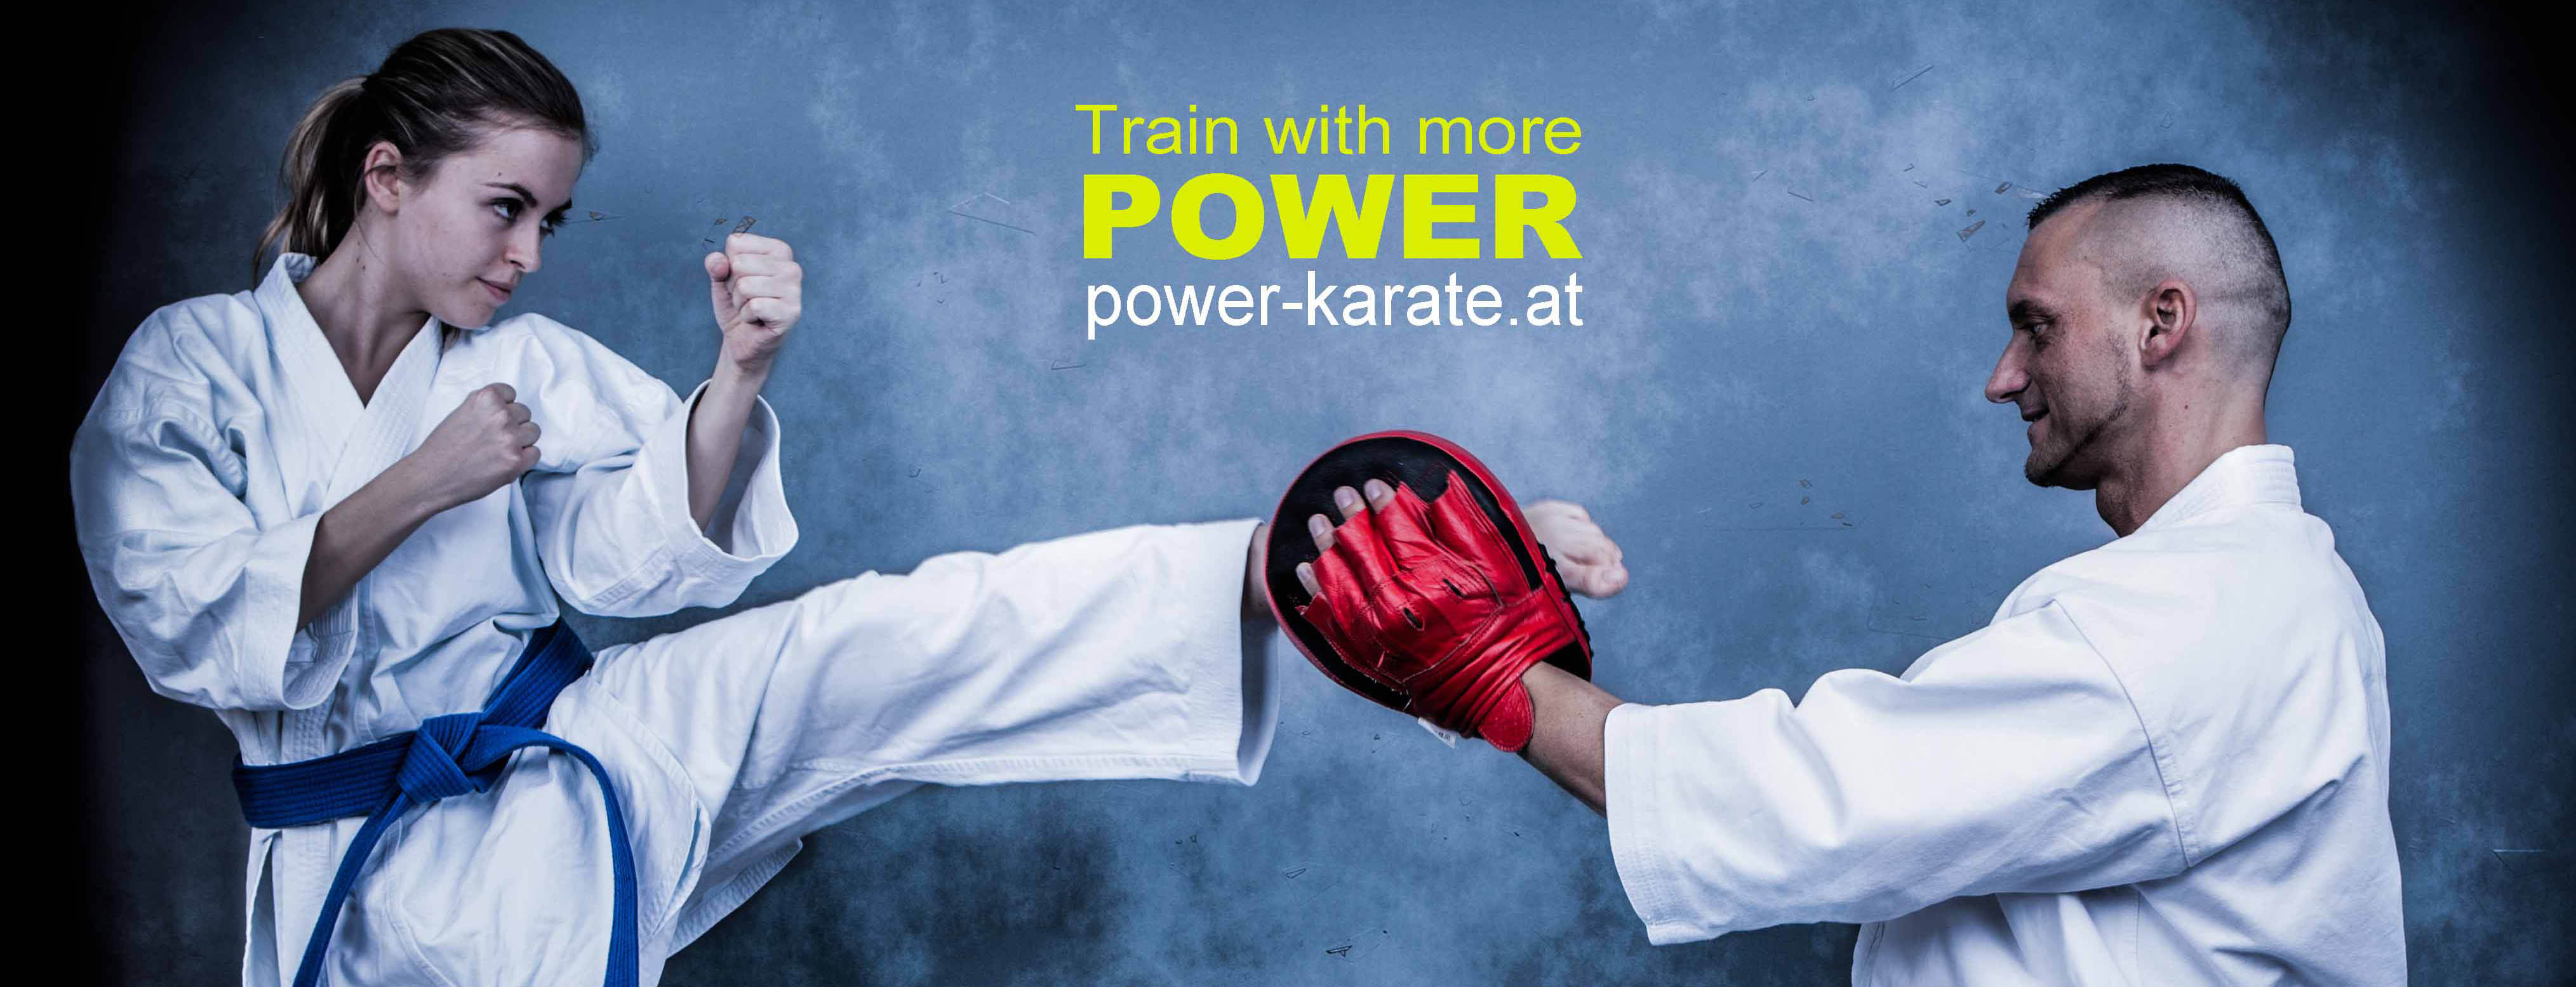 Train with more power schmal web